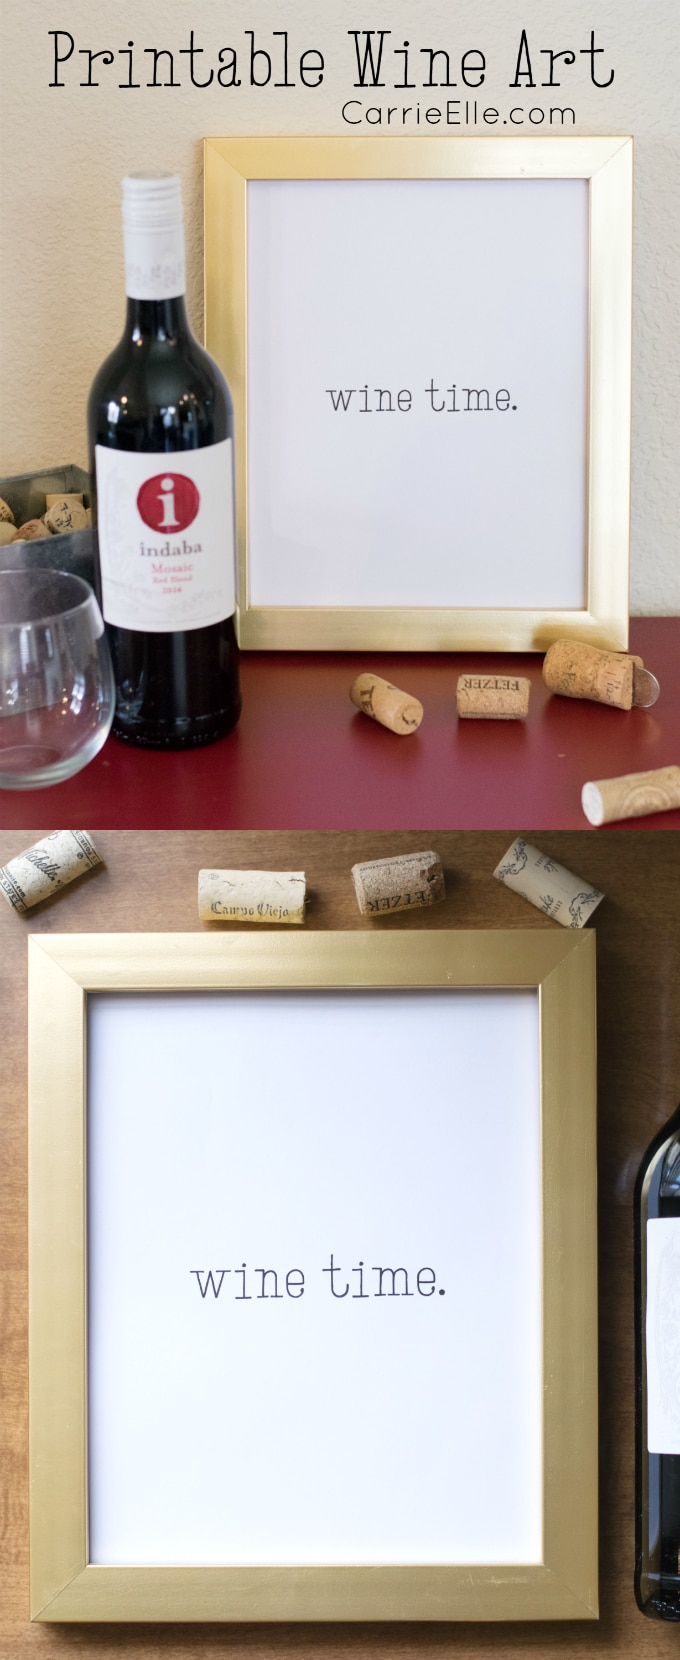 Printable Wine Art